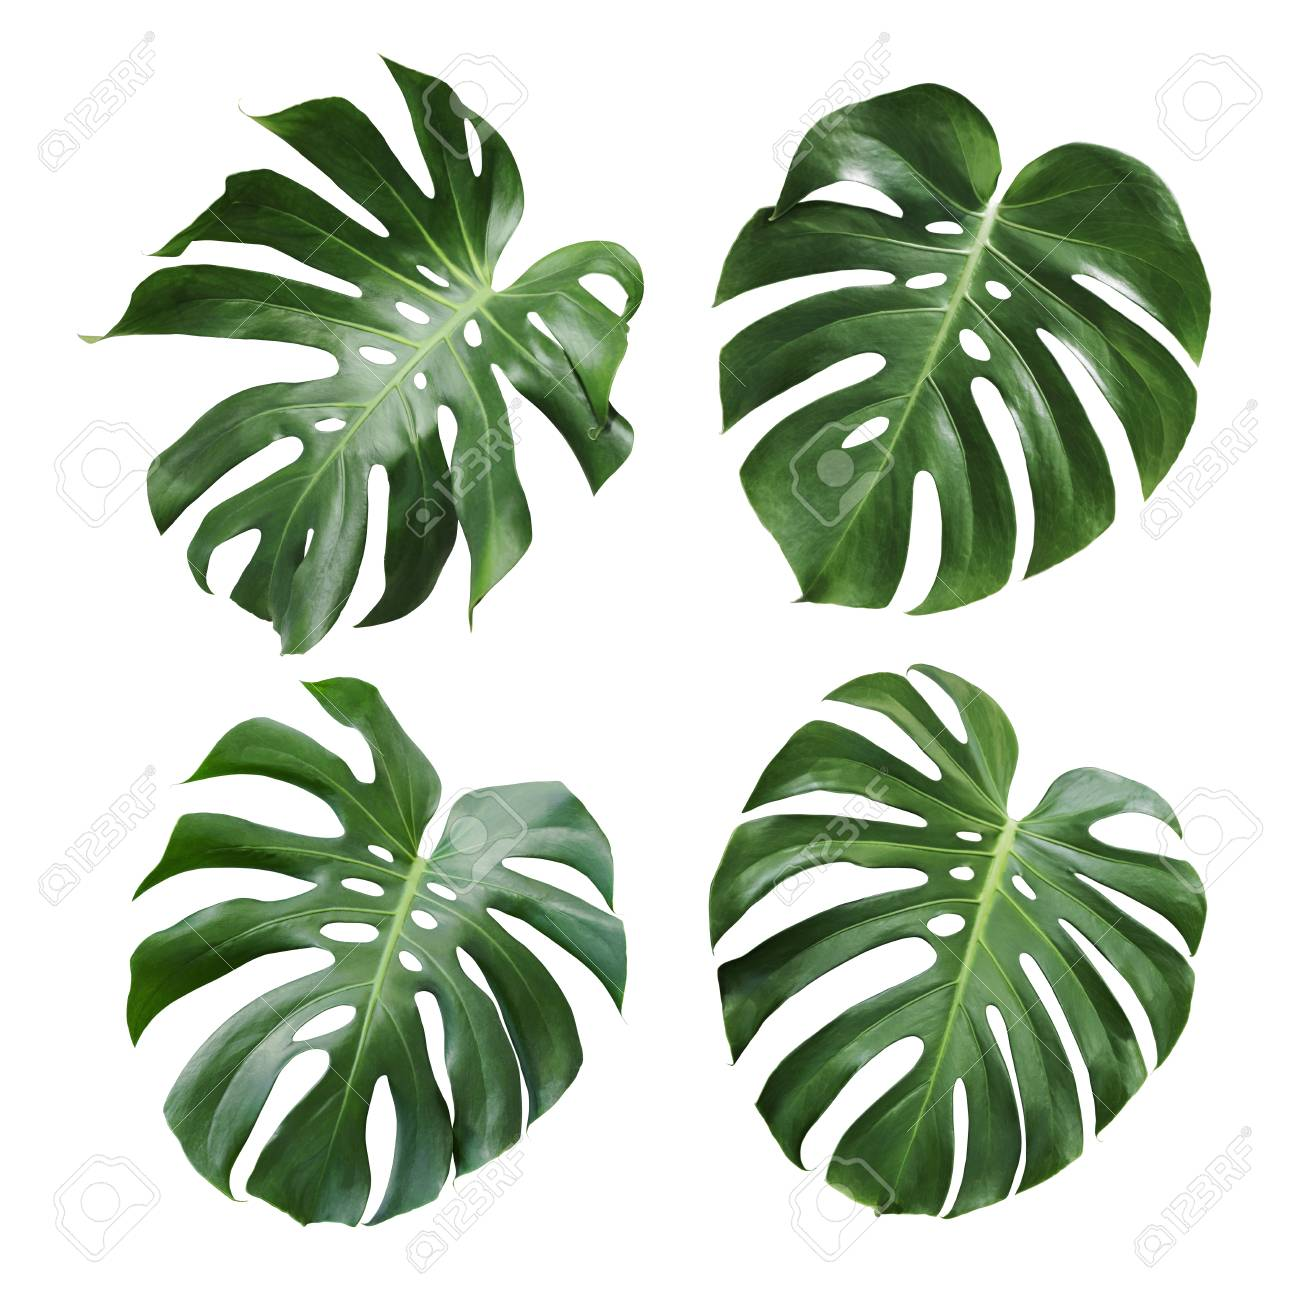 Monstera Deliciosa Tropical Leaf Isolated On White Background Stock Photo Picture And Royalty Free Image Image 98443296 Fresh tropical green leaves on white background with shadow. monstera deliciosa tropical leaf isolated on white background